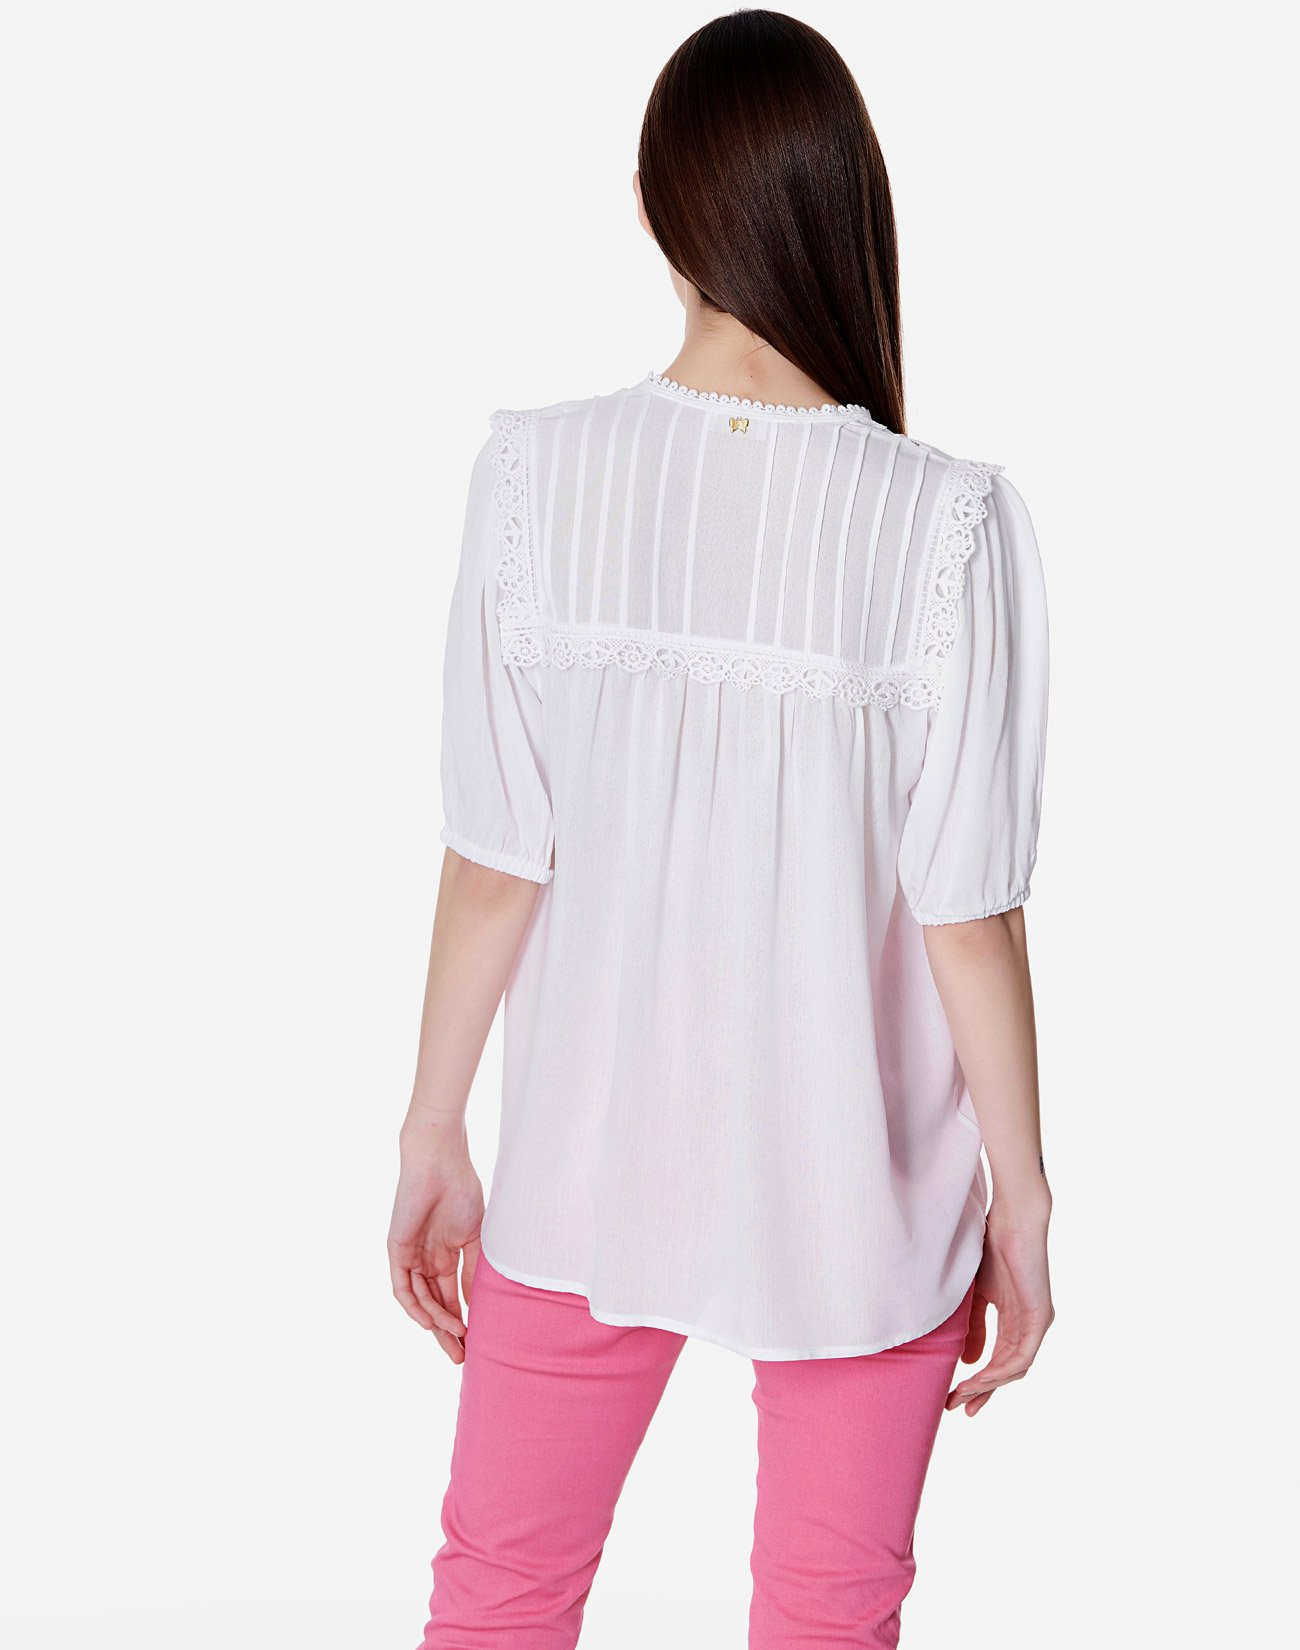 Ecovero viscose top with lace